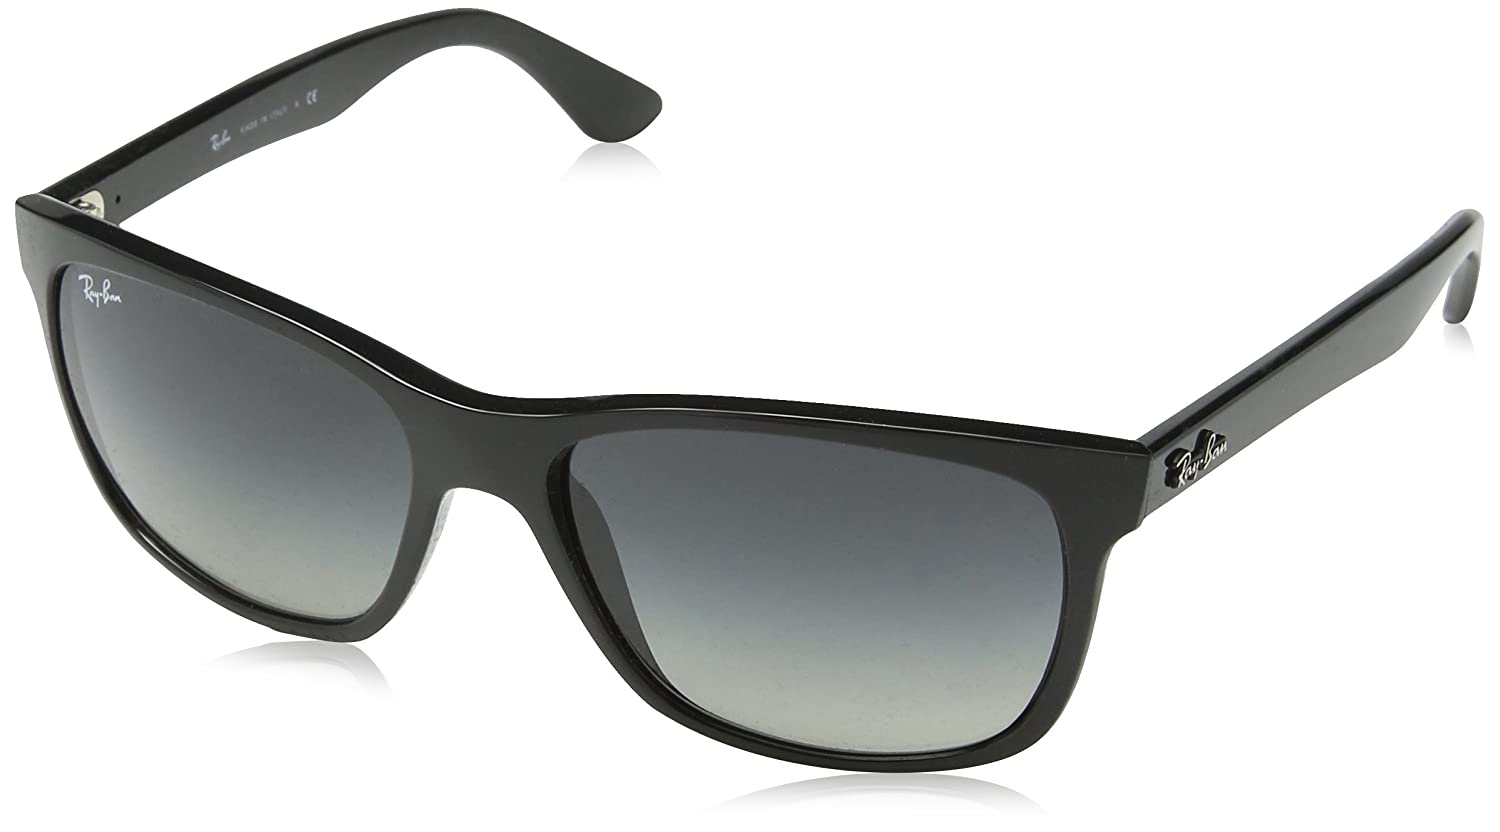 21818a9fdf7b6 wayfarer ray ban sunglasses for men ray ban sunglasses canada rb4181 ...